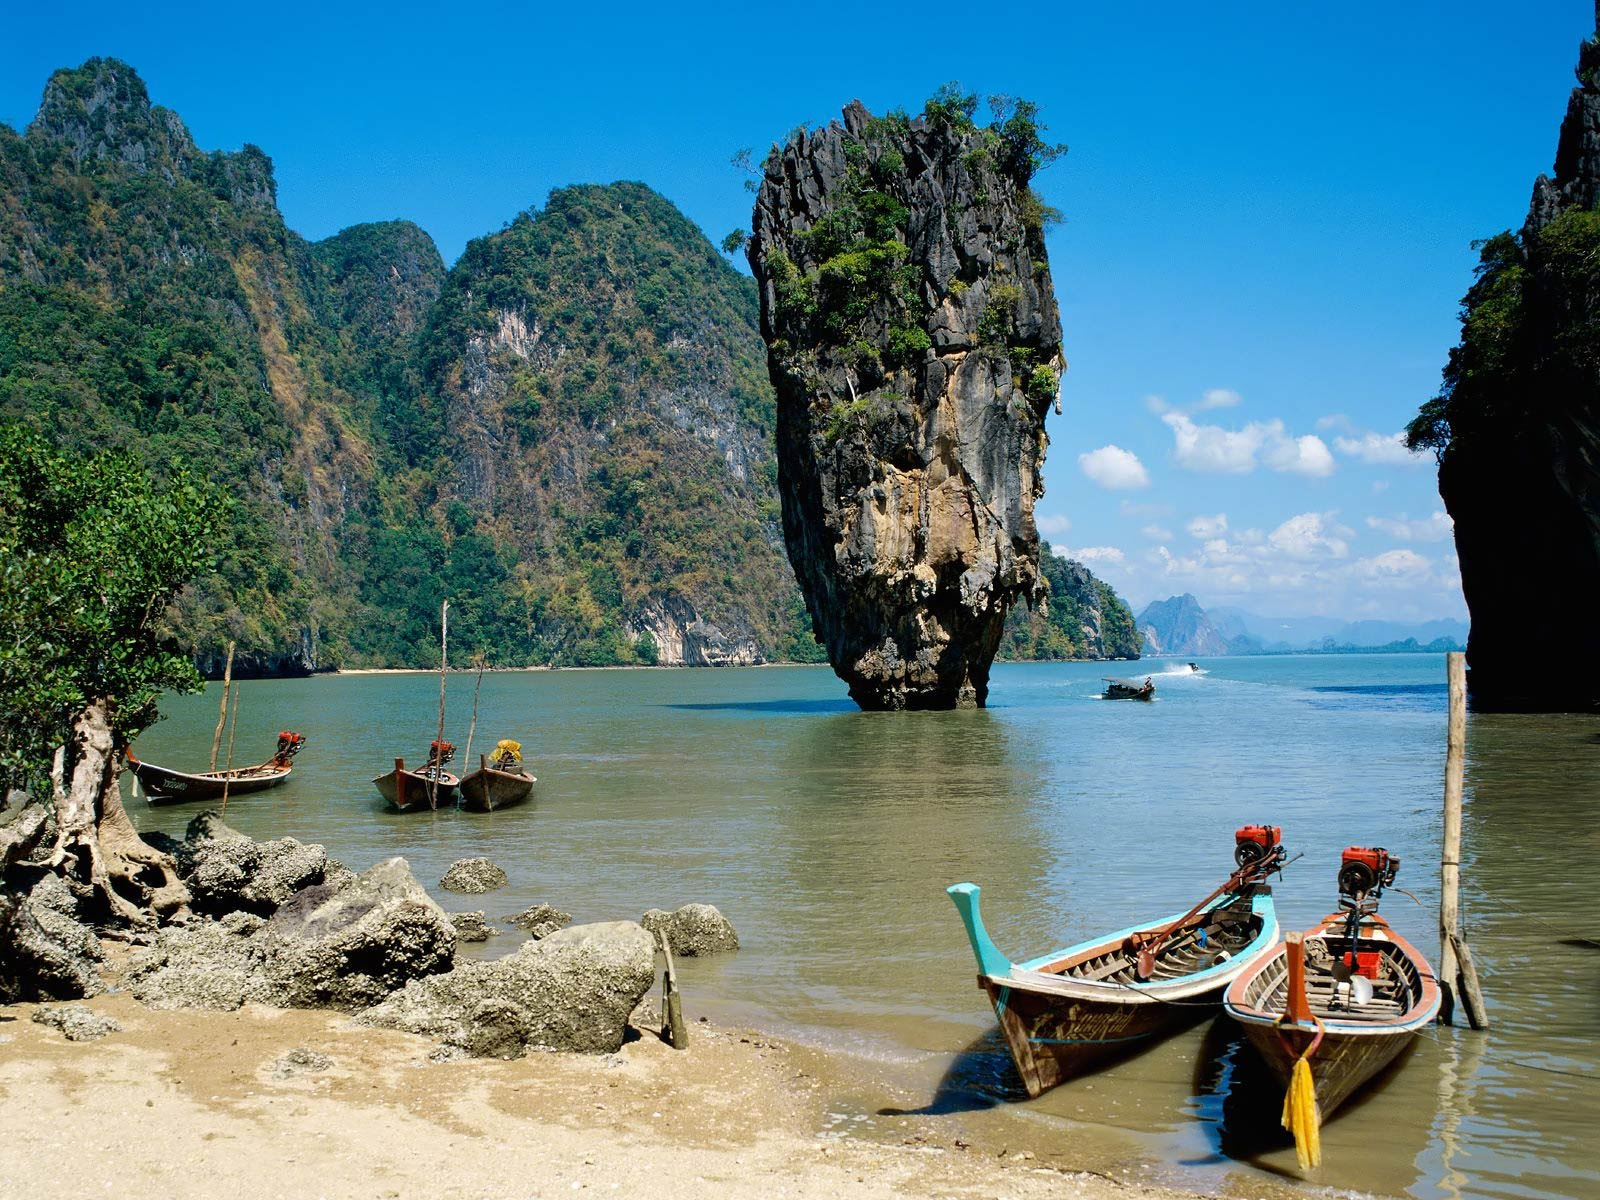 The Krabi Provence in Thailand is a small community of just about 24,000 people, and is located in southern Thailand, on the west coast. It's incredibly beautiful and a popular tourist destination.